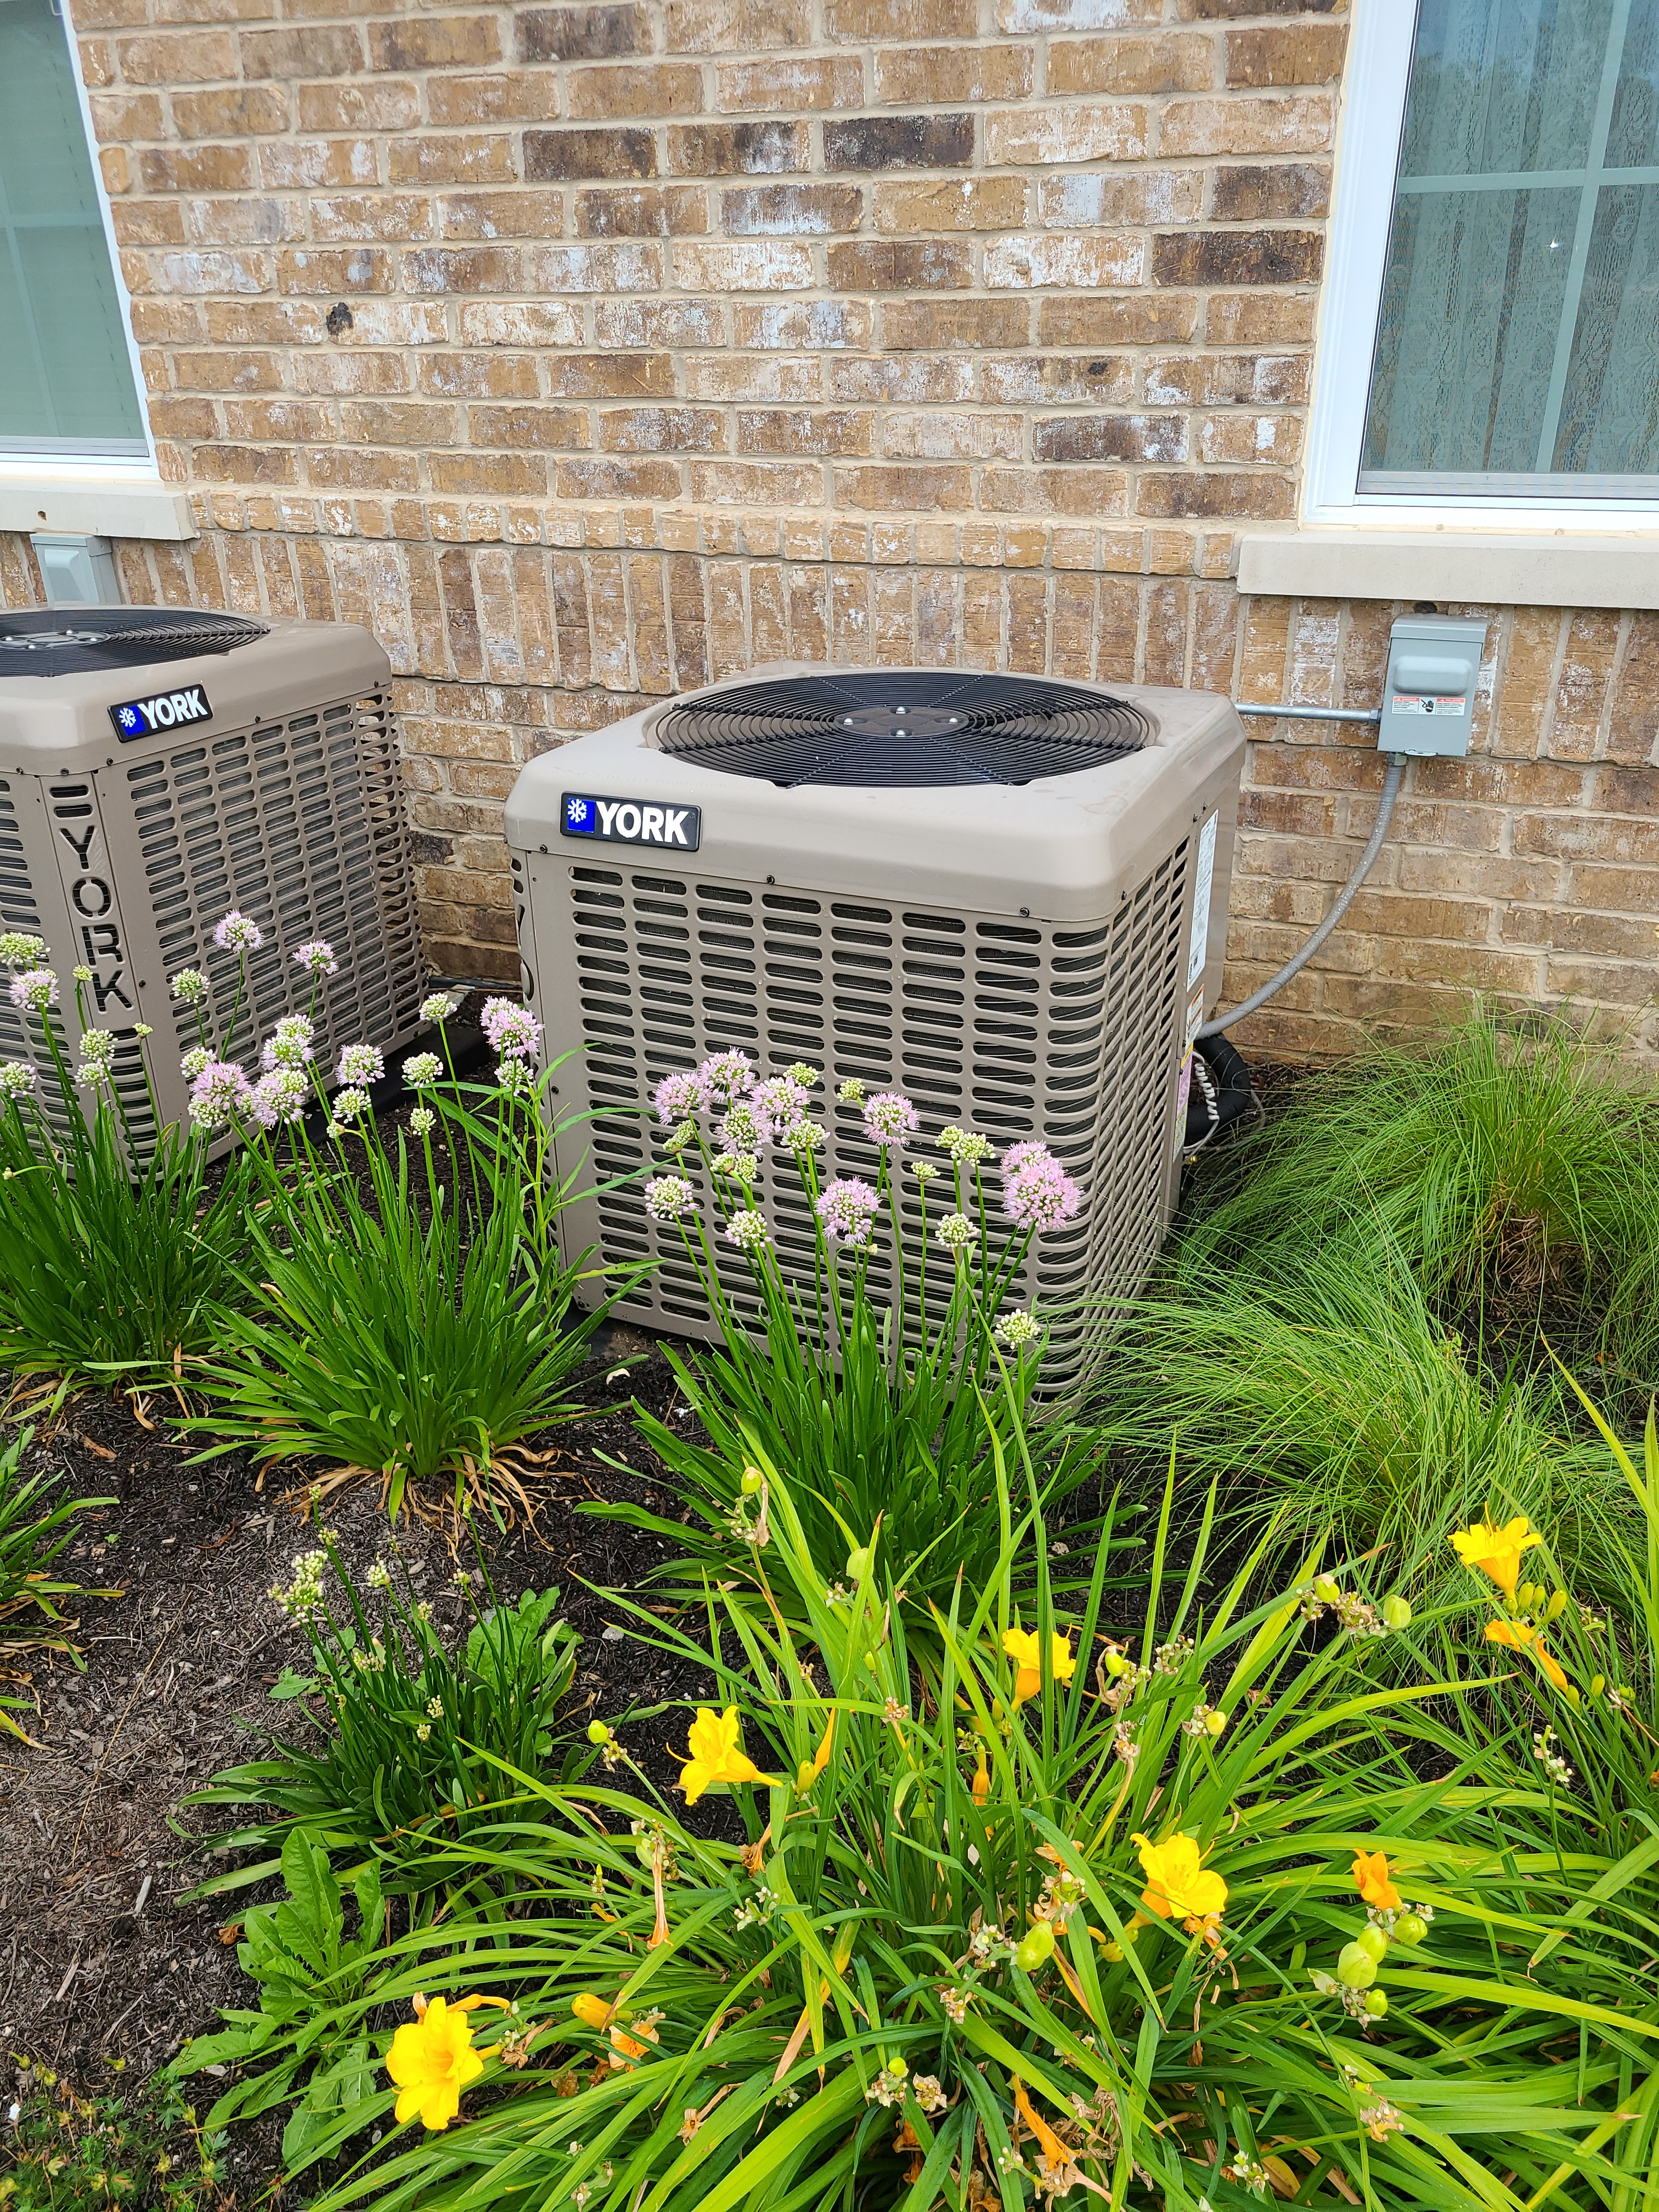 have confidence that your York will keep you cool this summer and schedule a maintenance with American Weathermakers.